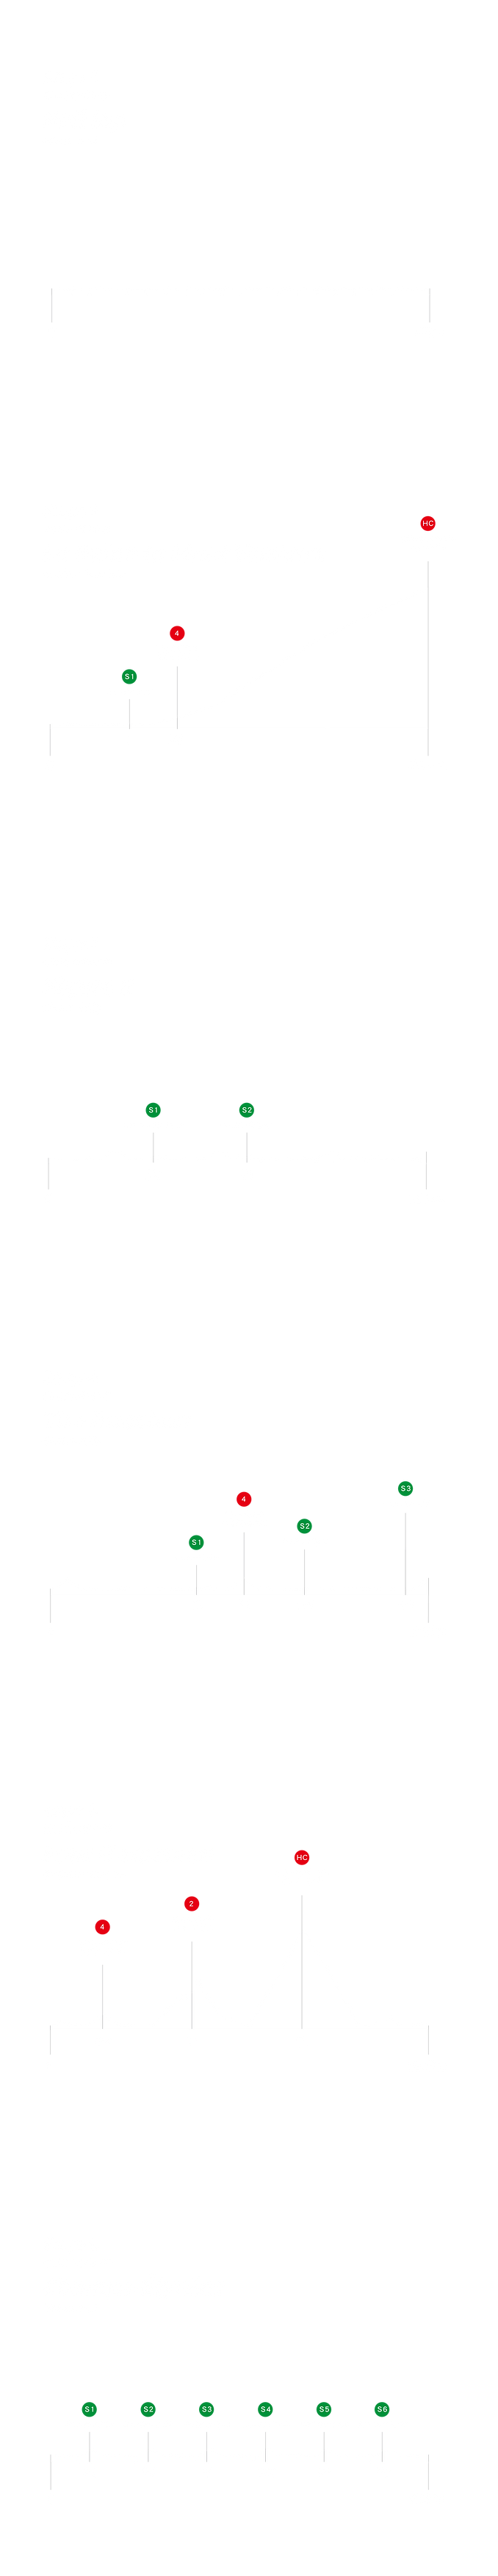 route_工作區域 1.png